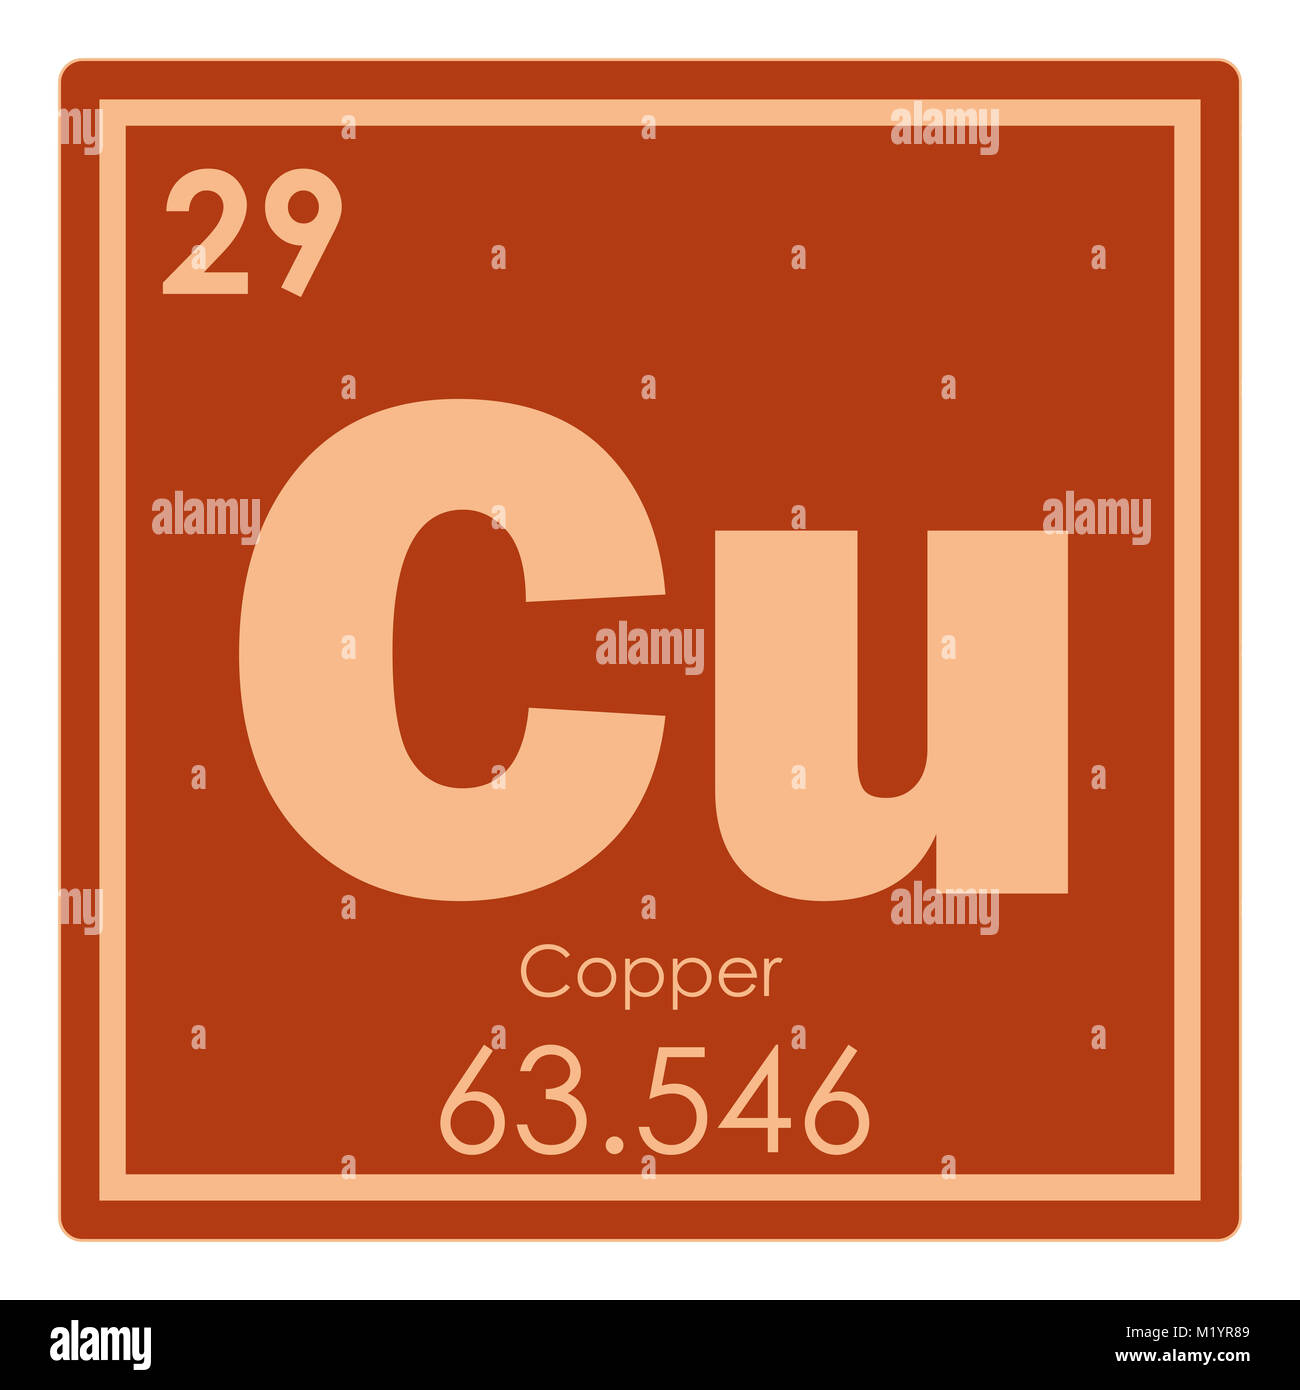 Copper Atom Stock Photos Copper Atom Stock Images Alamy